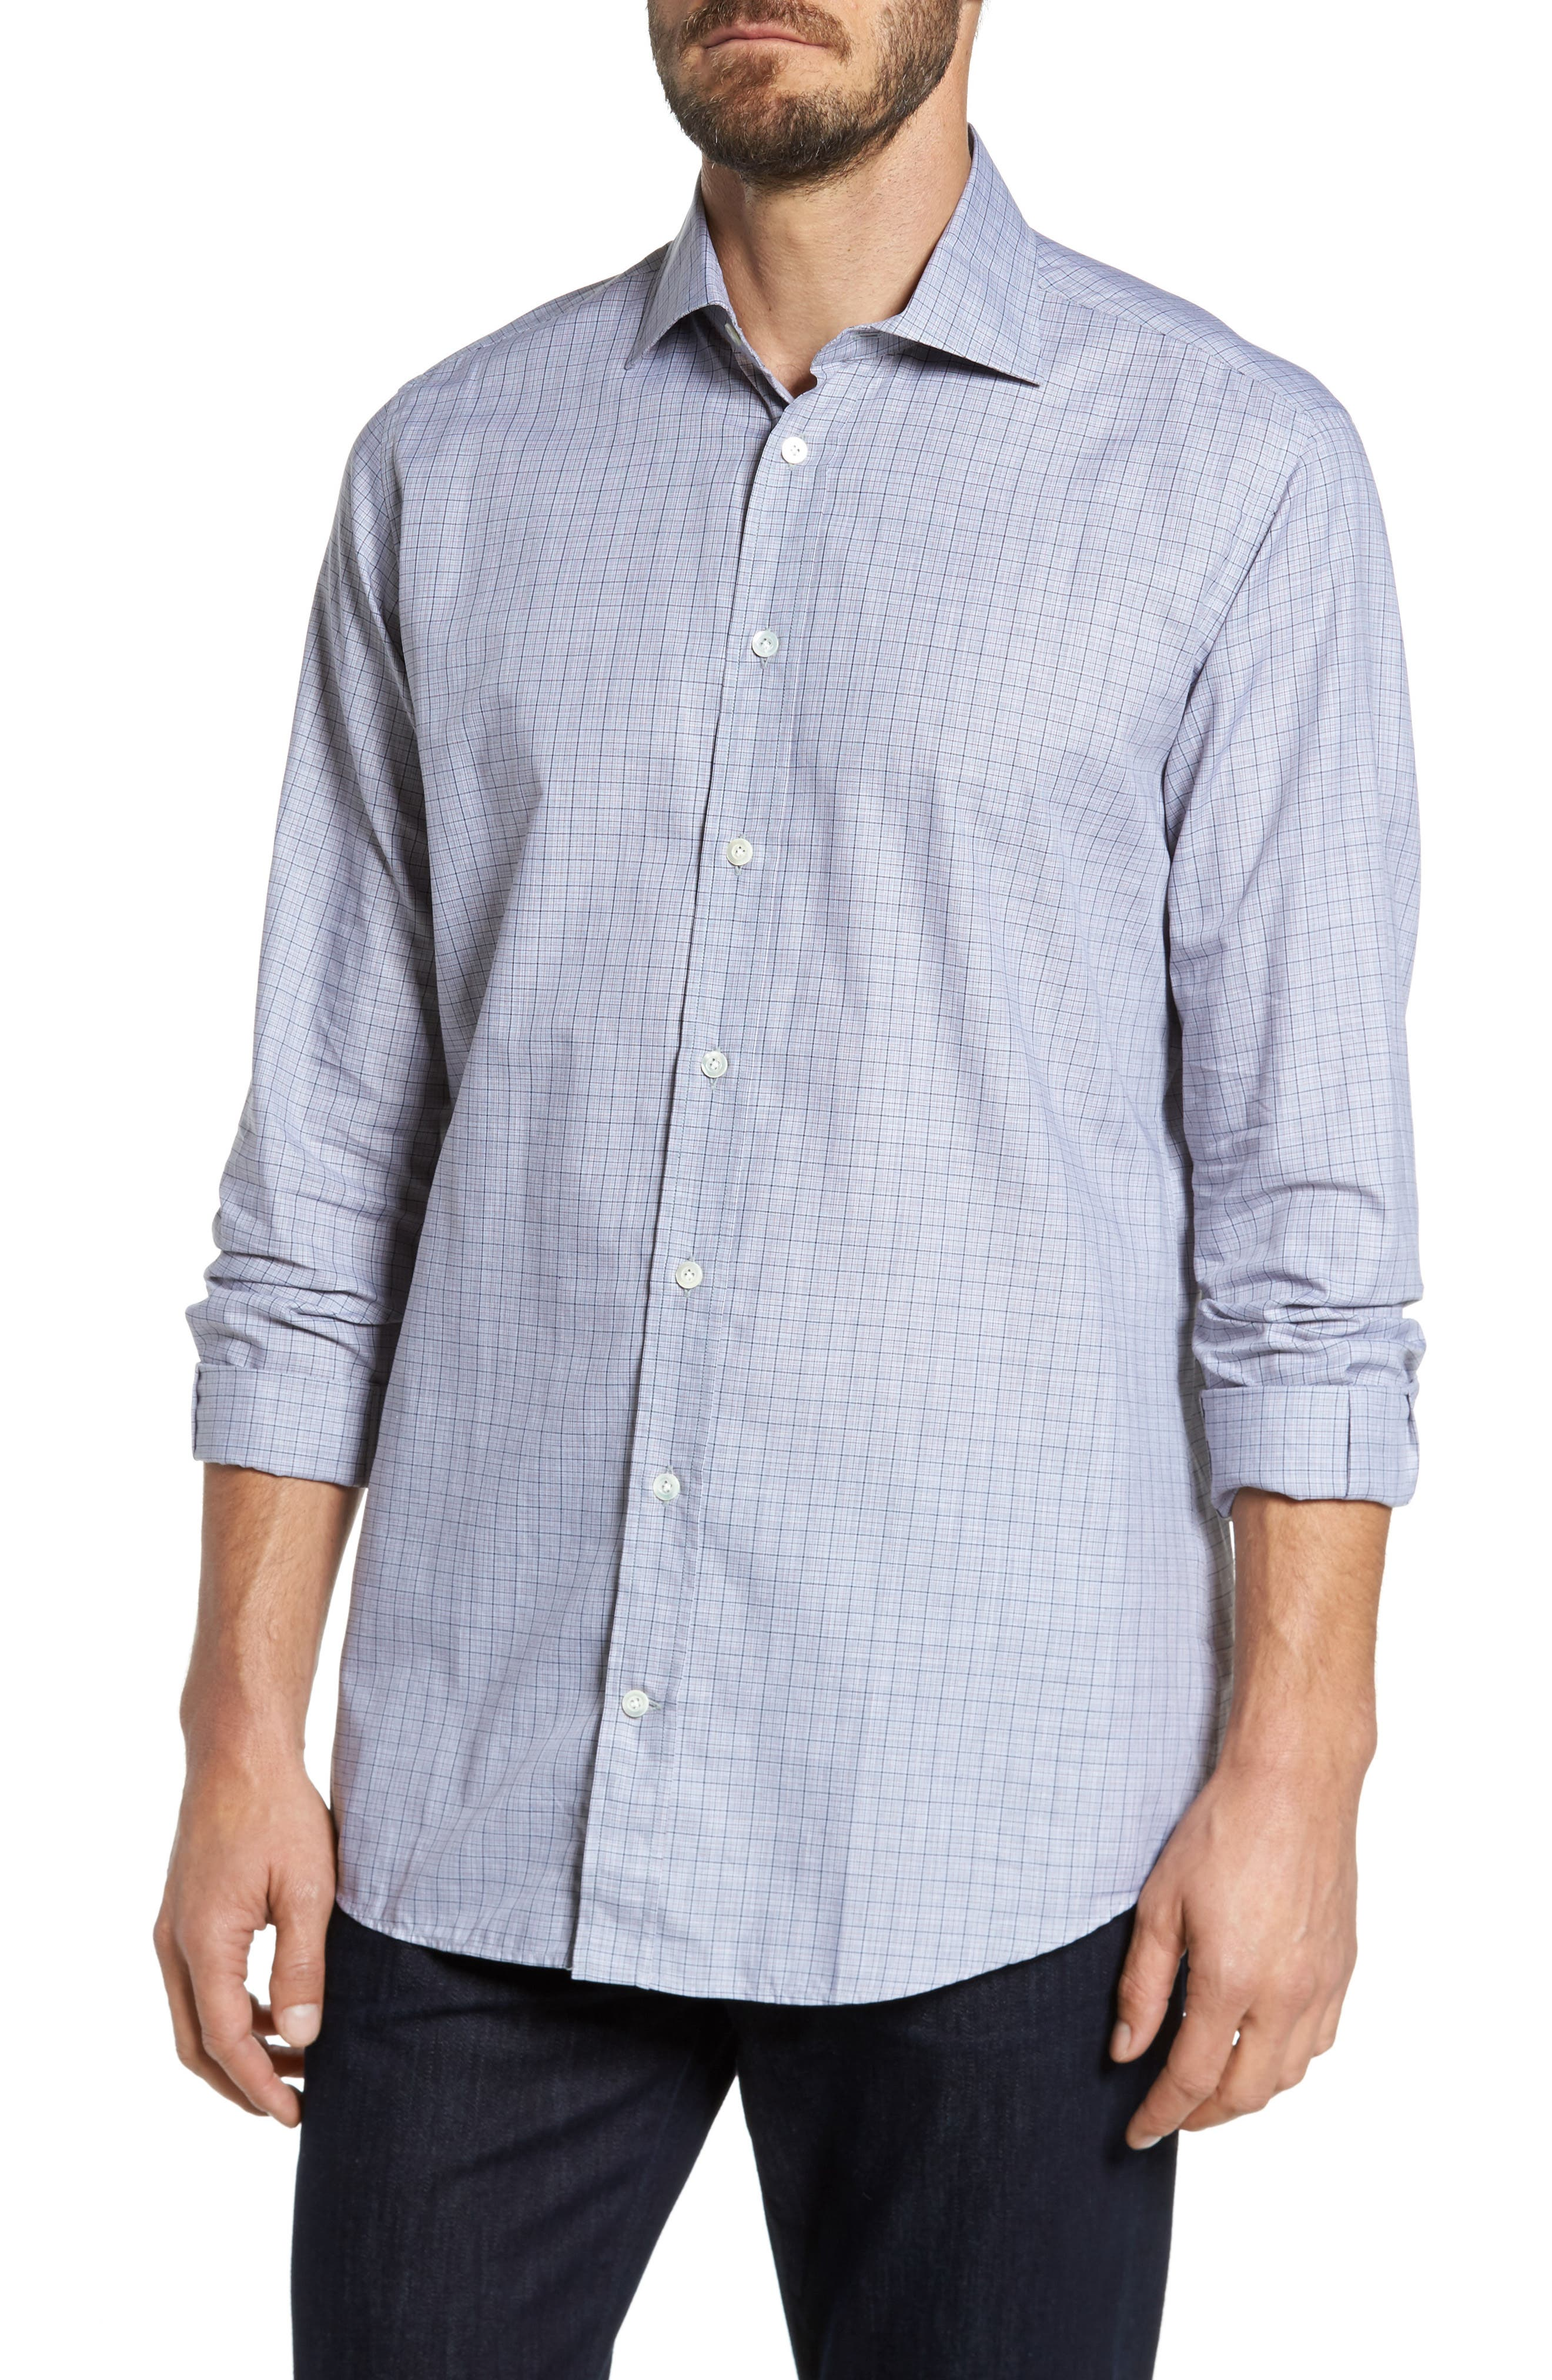 Main Image - Luciano Barbera Classic Fit Plaid Sport Shirt